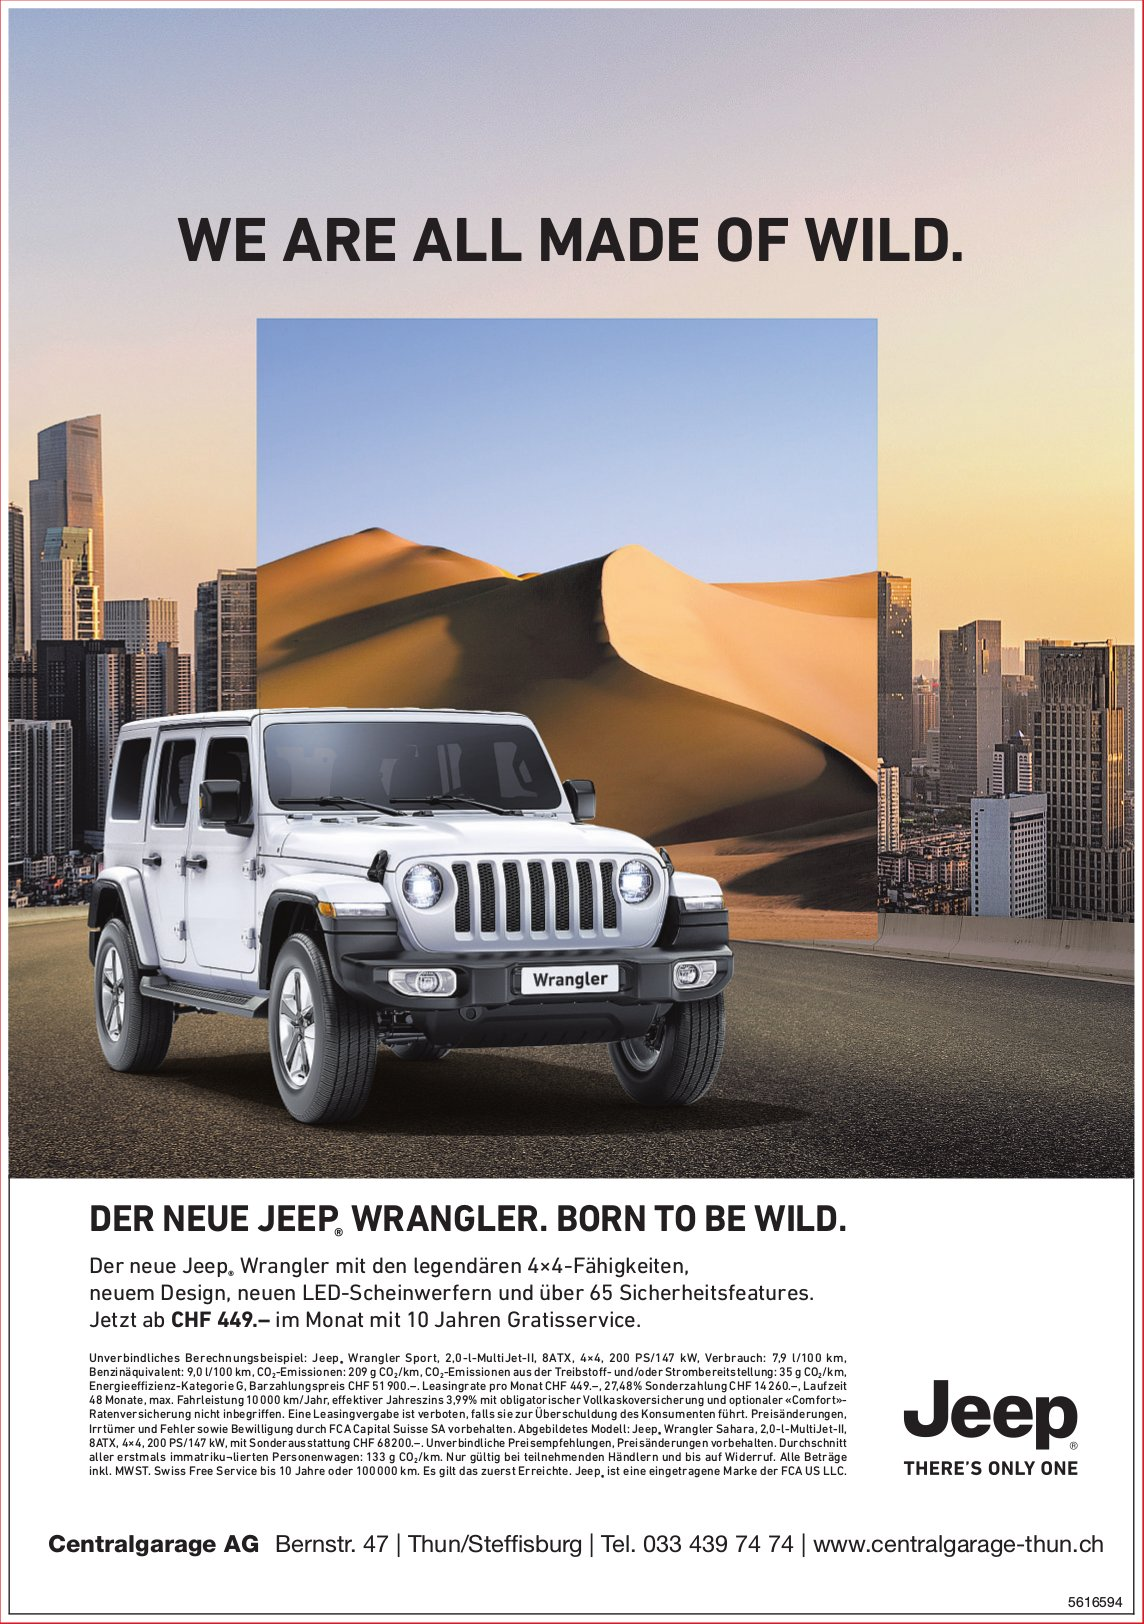 Centralgarage AG - DER NEUE JEEP WRANGLER. BORN TO BE WILD.